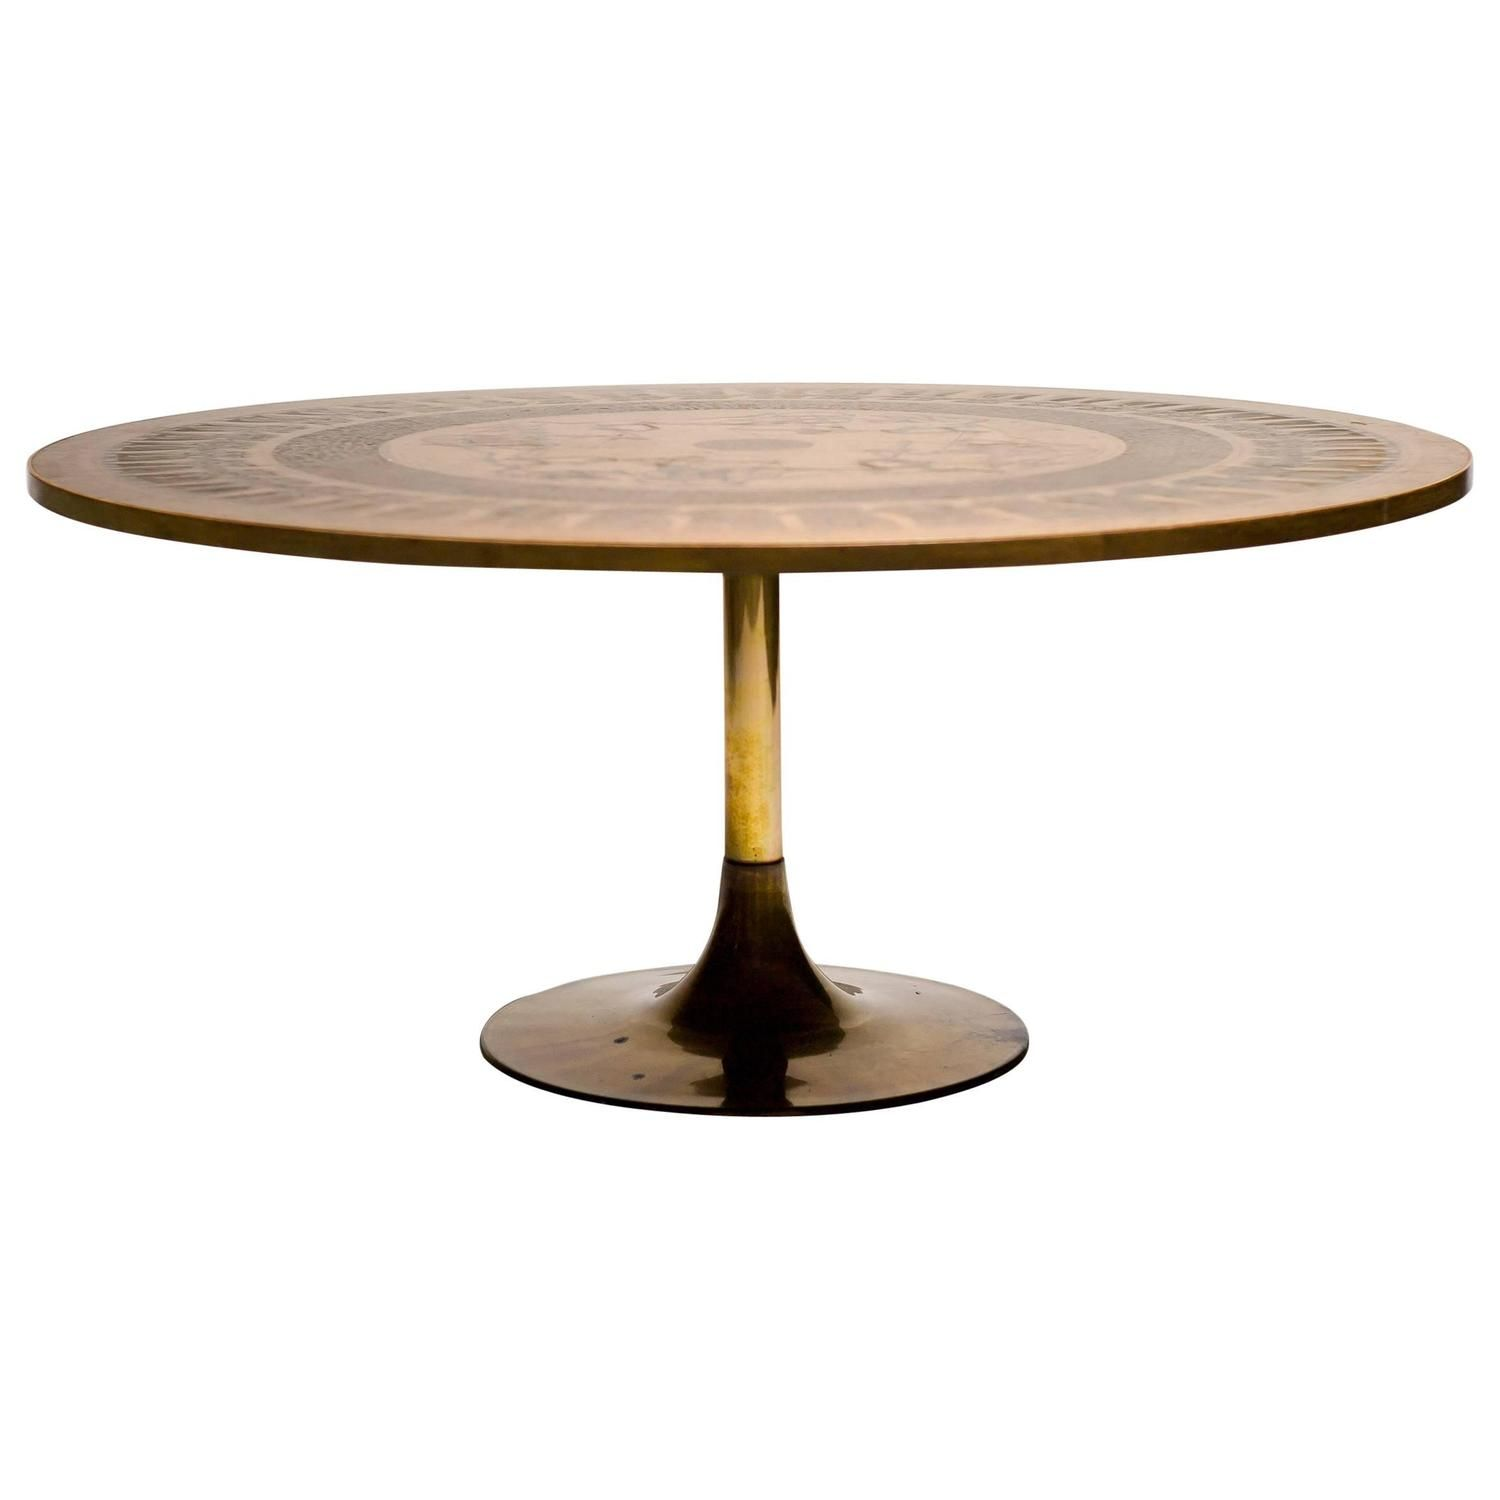 Embossed Copper Coffee Table Denmark Circa 1960 See More Antique And Modern Coffee Mid Century Coffee Table Coffee And Cocktail Tables Copper Coffee Table [ 1500 x 1500 Pixel ]